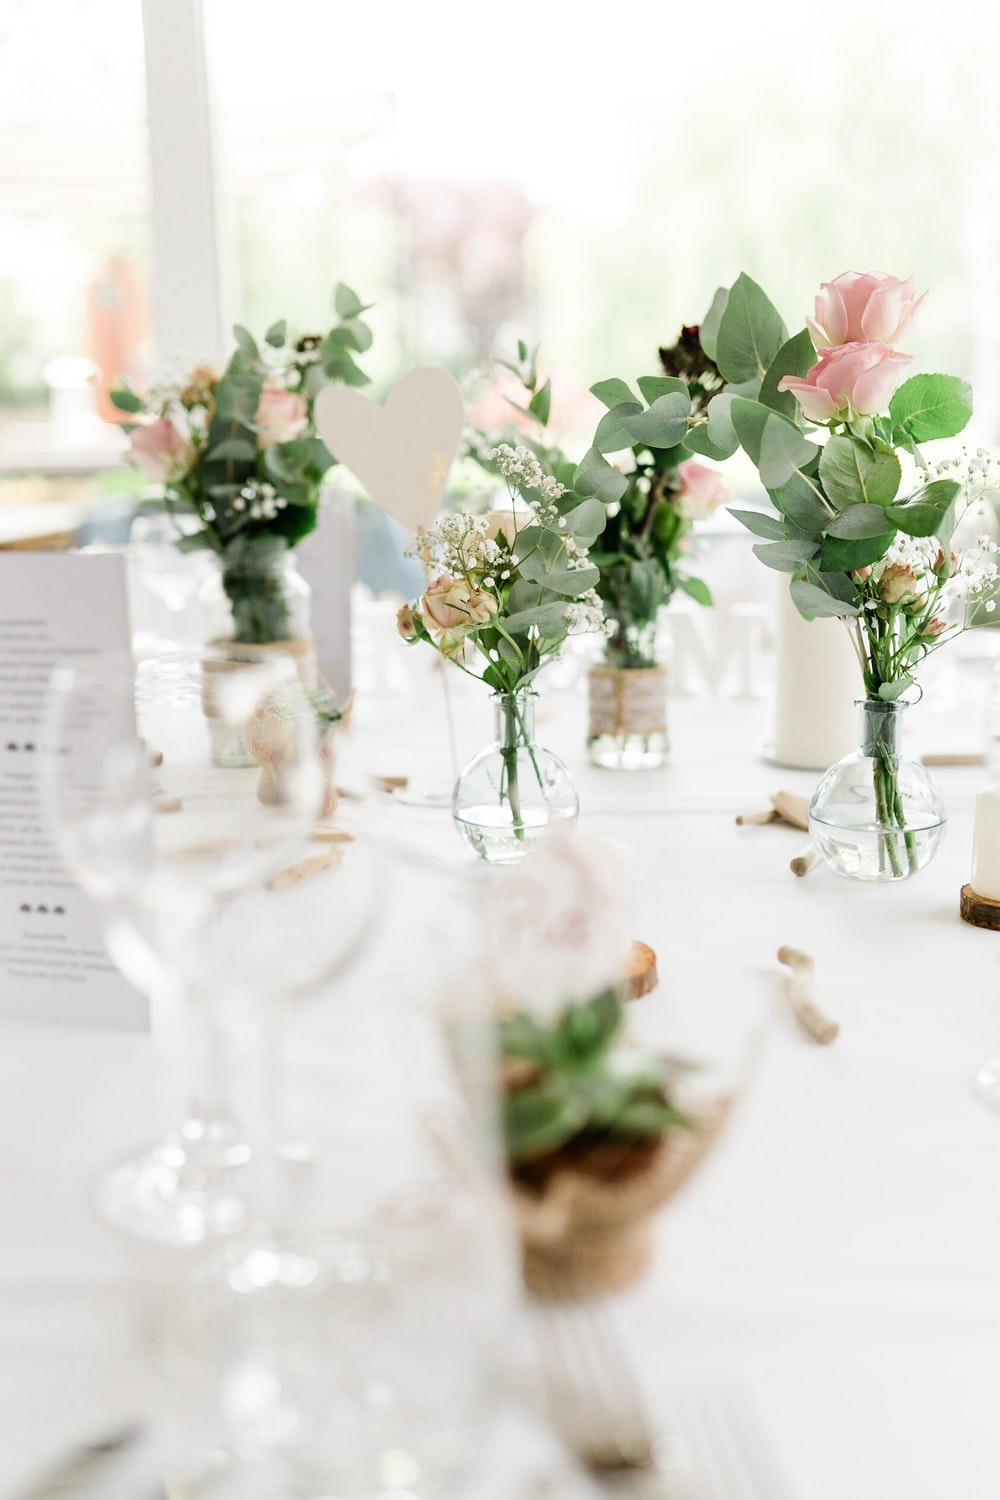 pink and white roses in clear glass vase on table